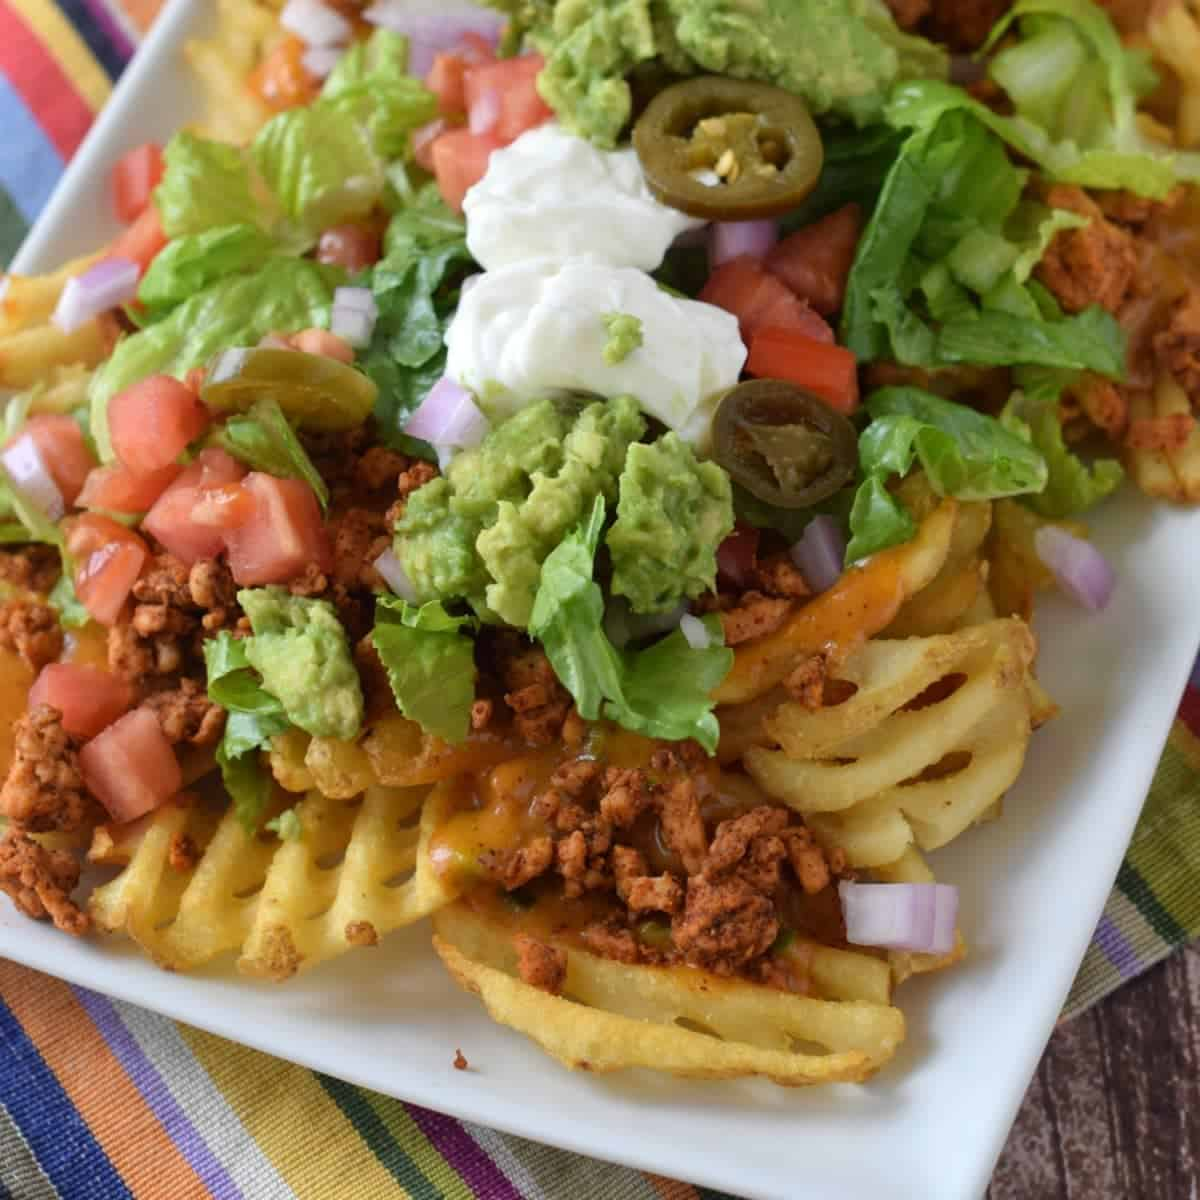 Dining A Crinkle Cutter How To Make Waffle Shaped Fries Waffle Fry Nachos Wine Glue How To Make Waffle Fries nice food How To Make Waffle Fries